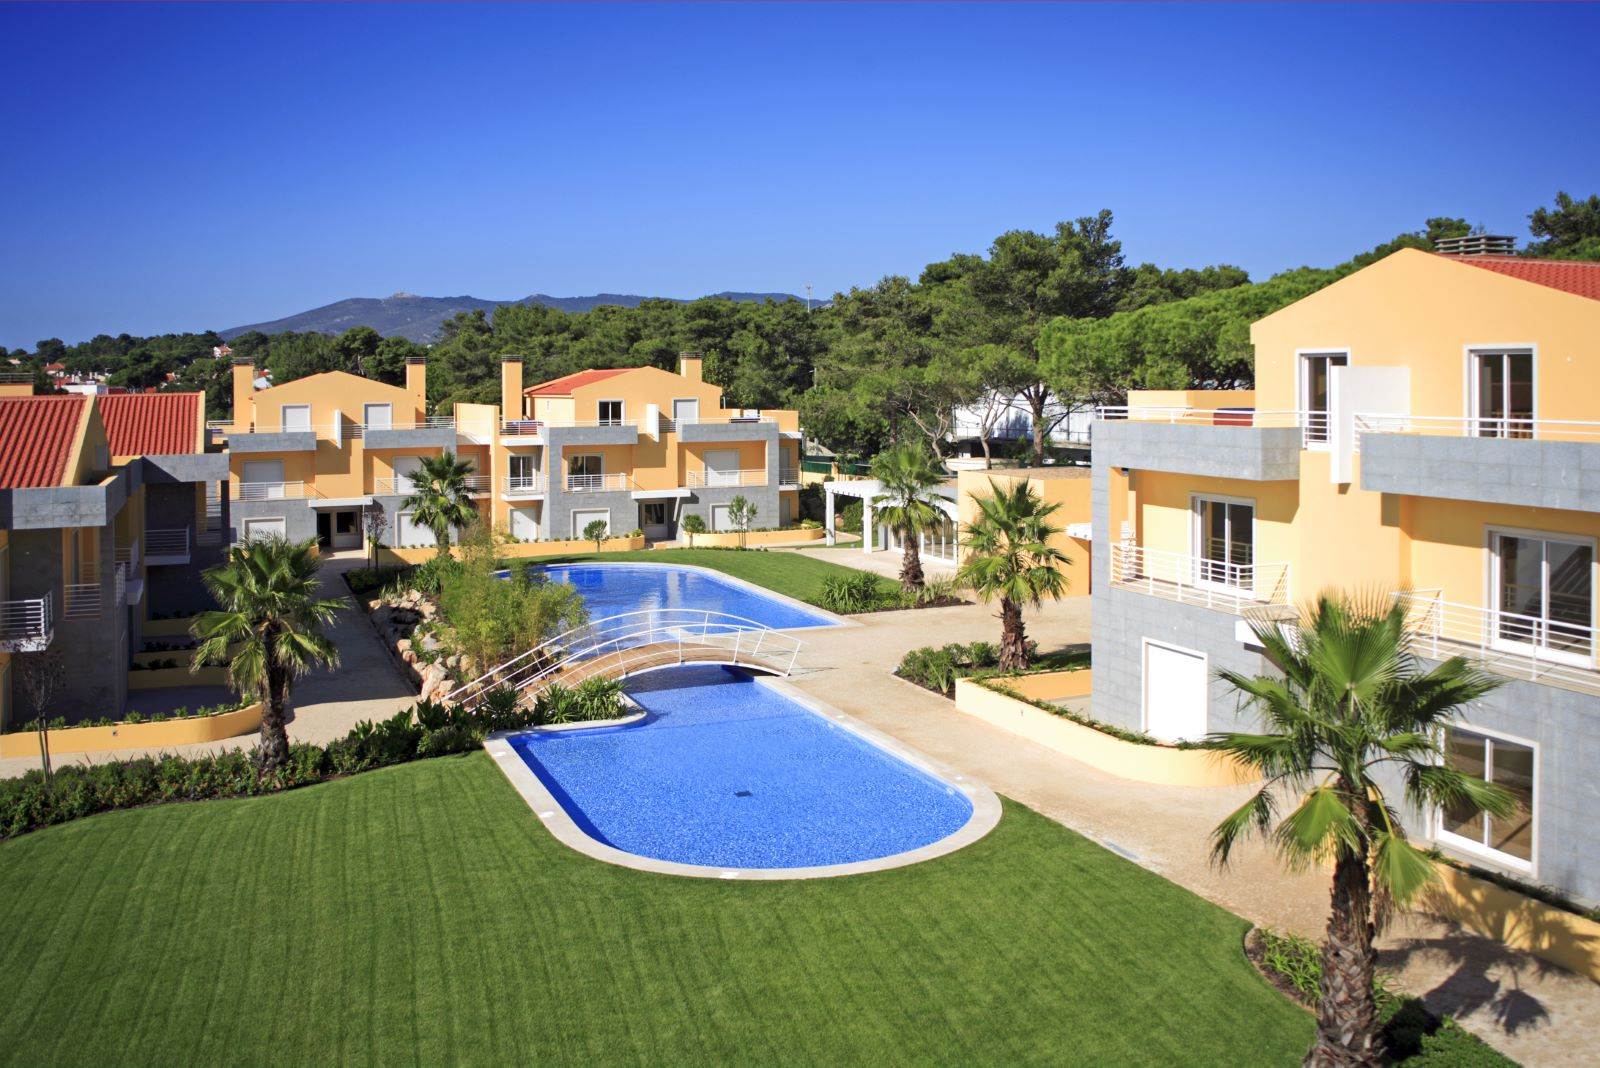 DUPLEX 4 BEDROOM APARTMENT WITH TERRACE AND JACUZZI, IN CASCAIS